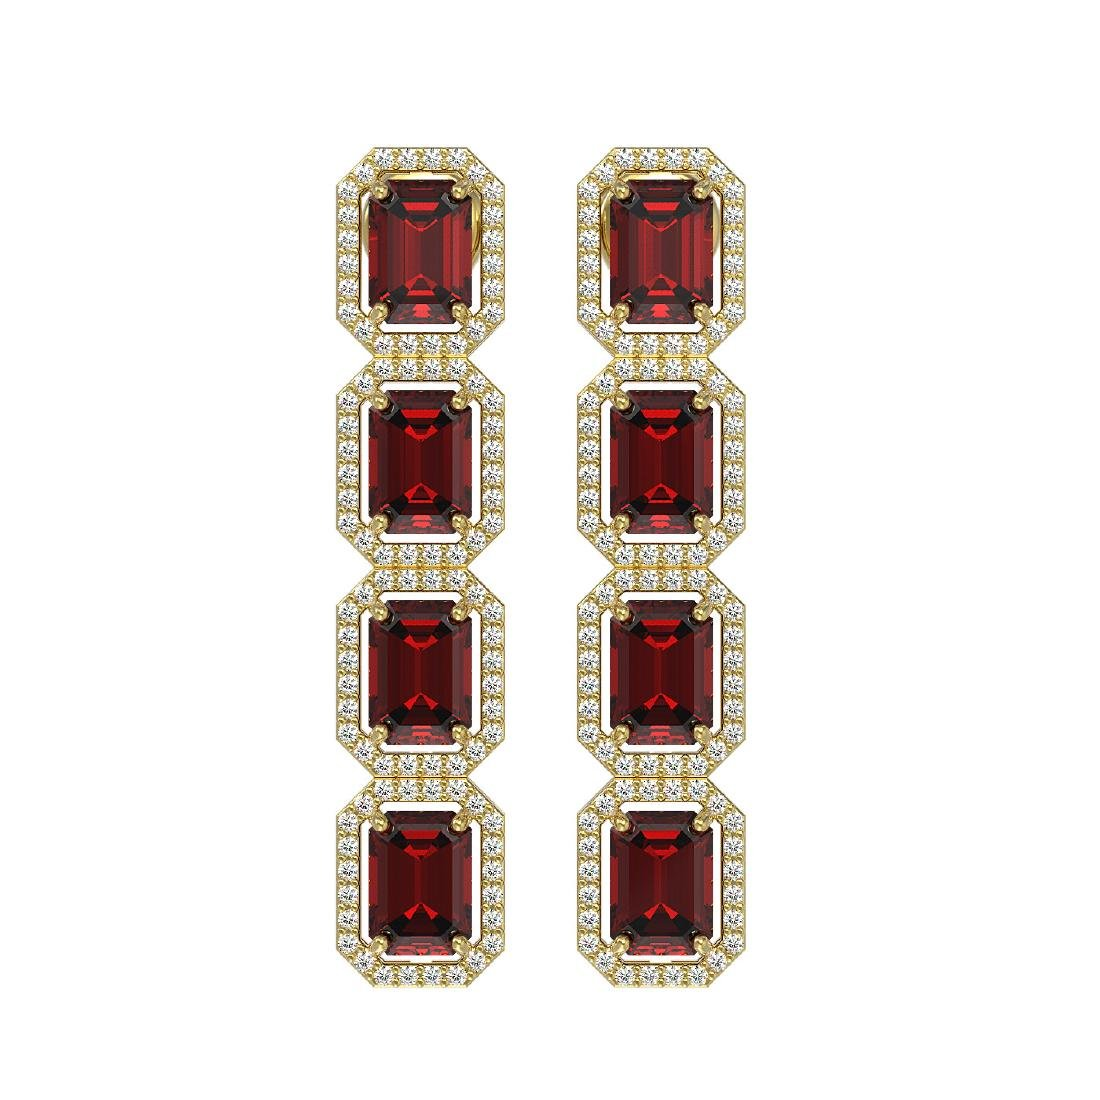 12.73 CTW Garnet & Diamond Halo Earrings 10K Yellow